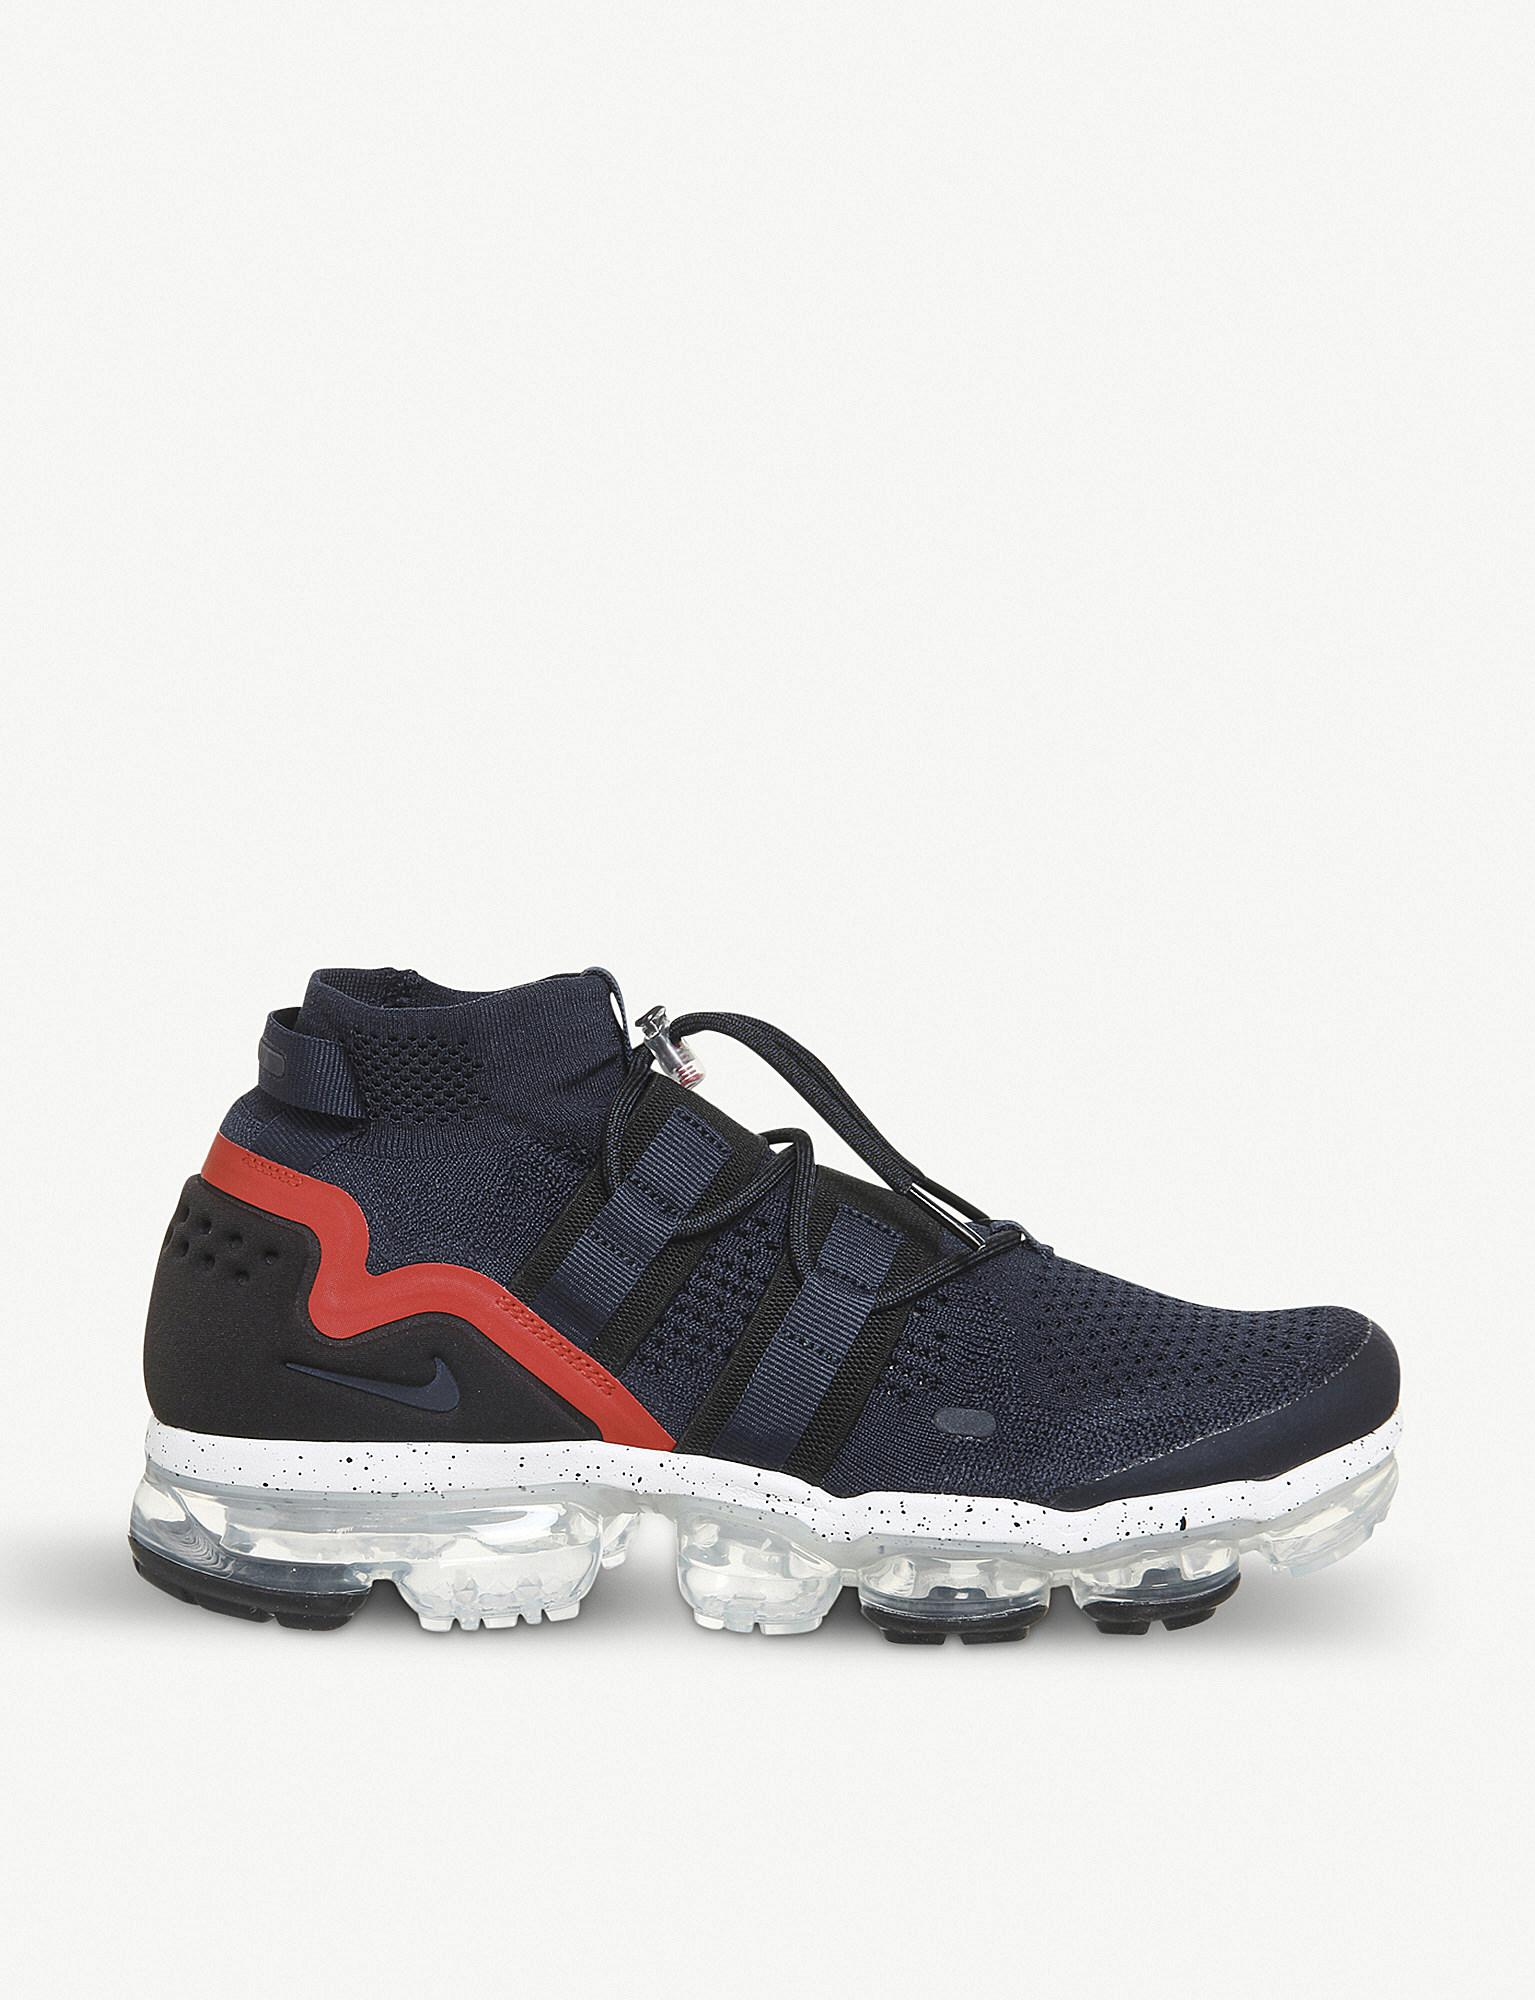 48fe57c84ade Lyst - Nike Air Vapormax Flyknit Utility Trainers in Blue for Men